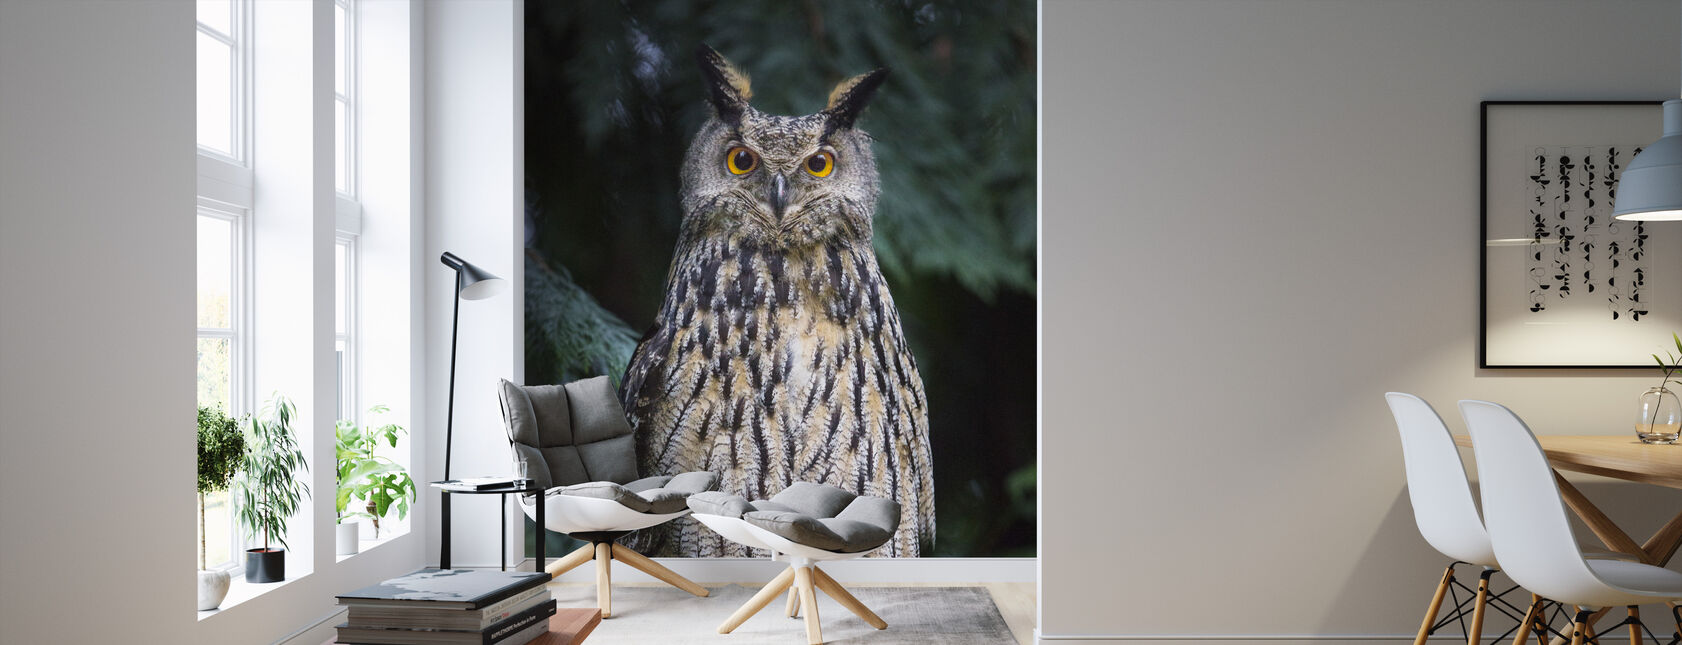 Owl - Wallpaper - Living Room